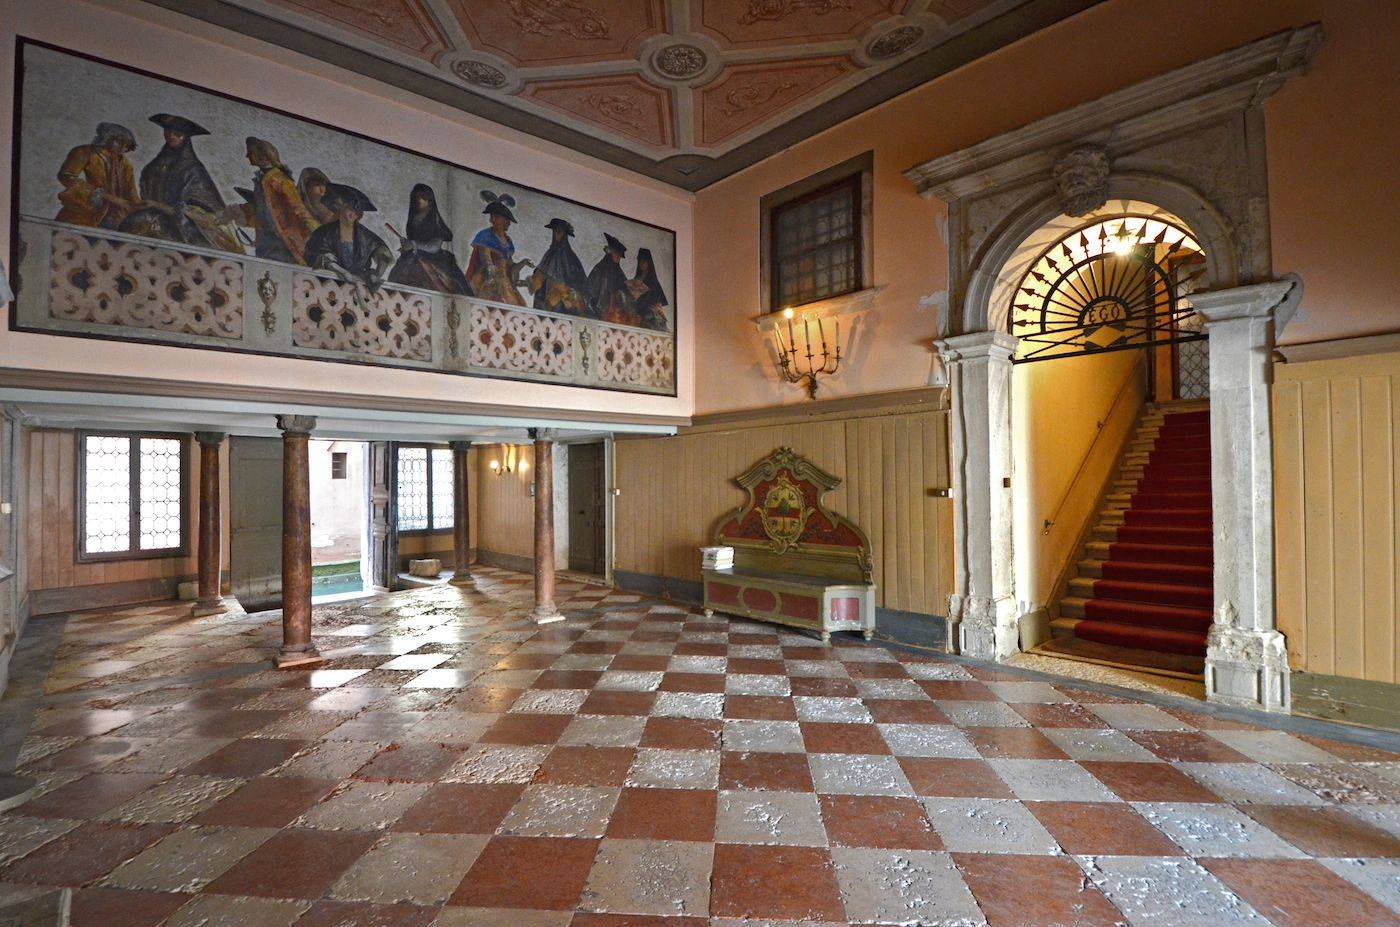 the stunning communal entrance hall at the ground floor of the Palazzo Veneziano